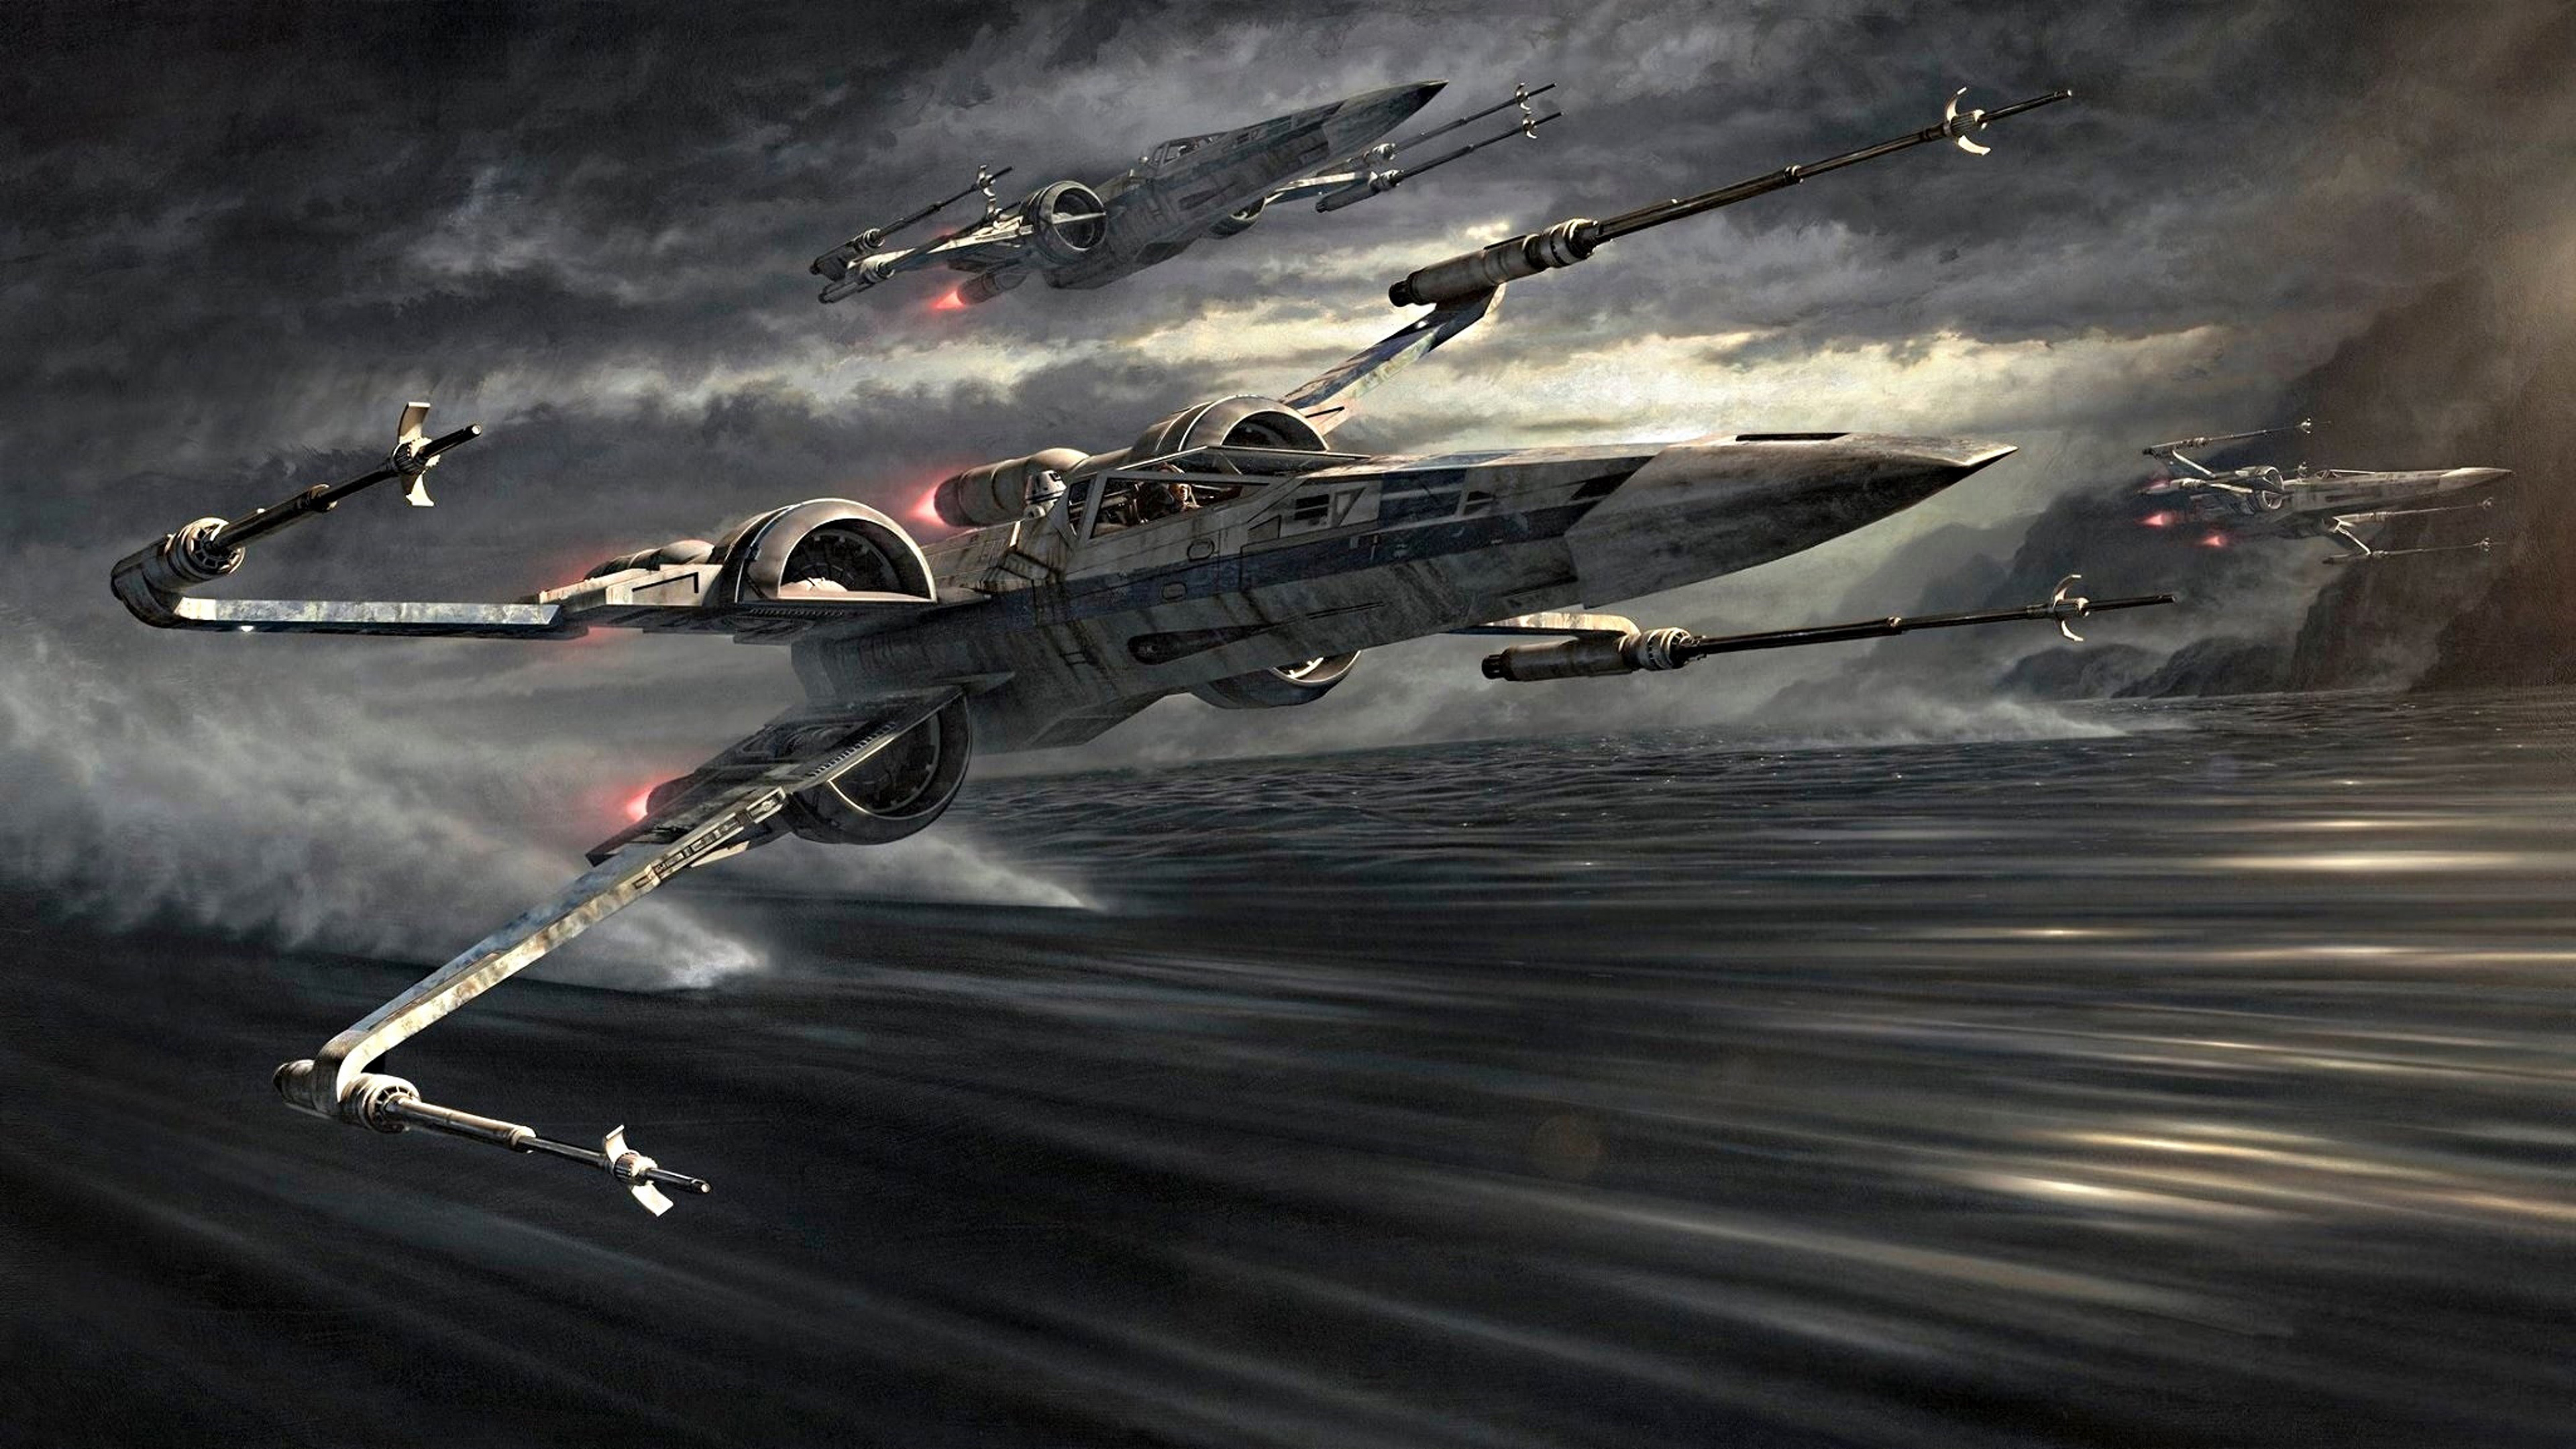 Star Wars X Wing Art 3840x2160 Wallpaper Teahub Io